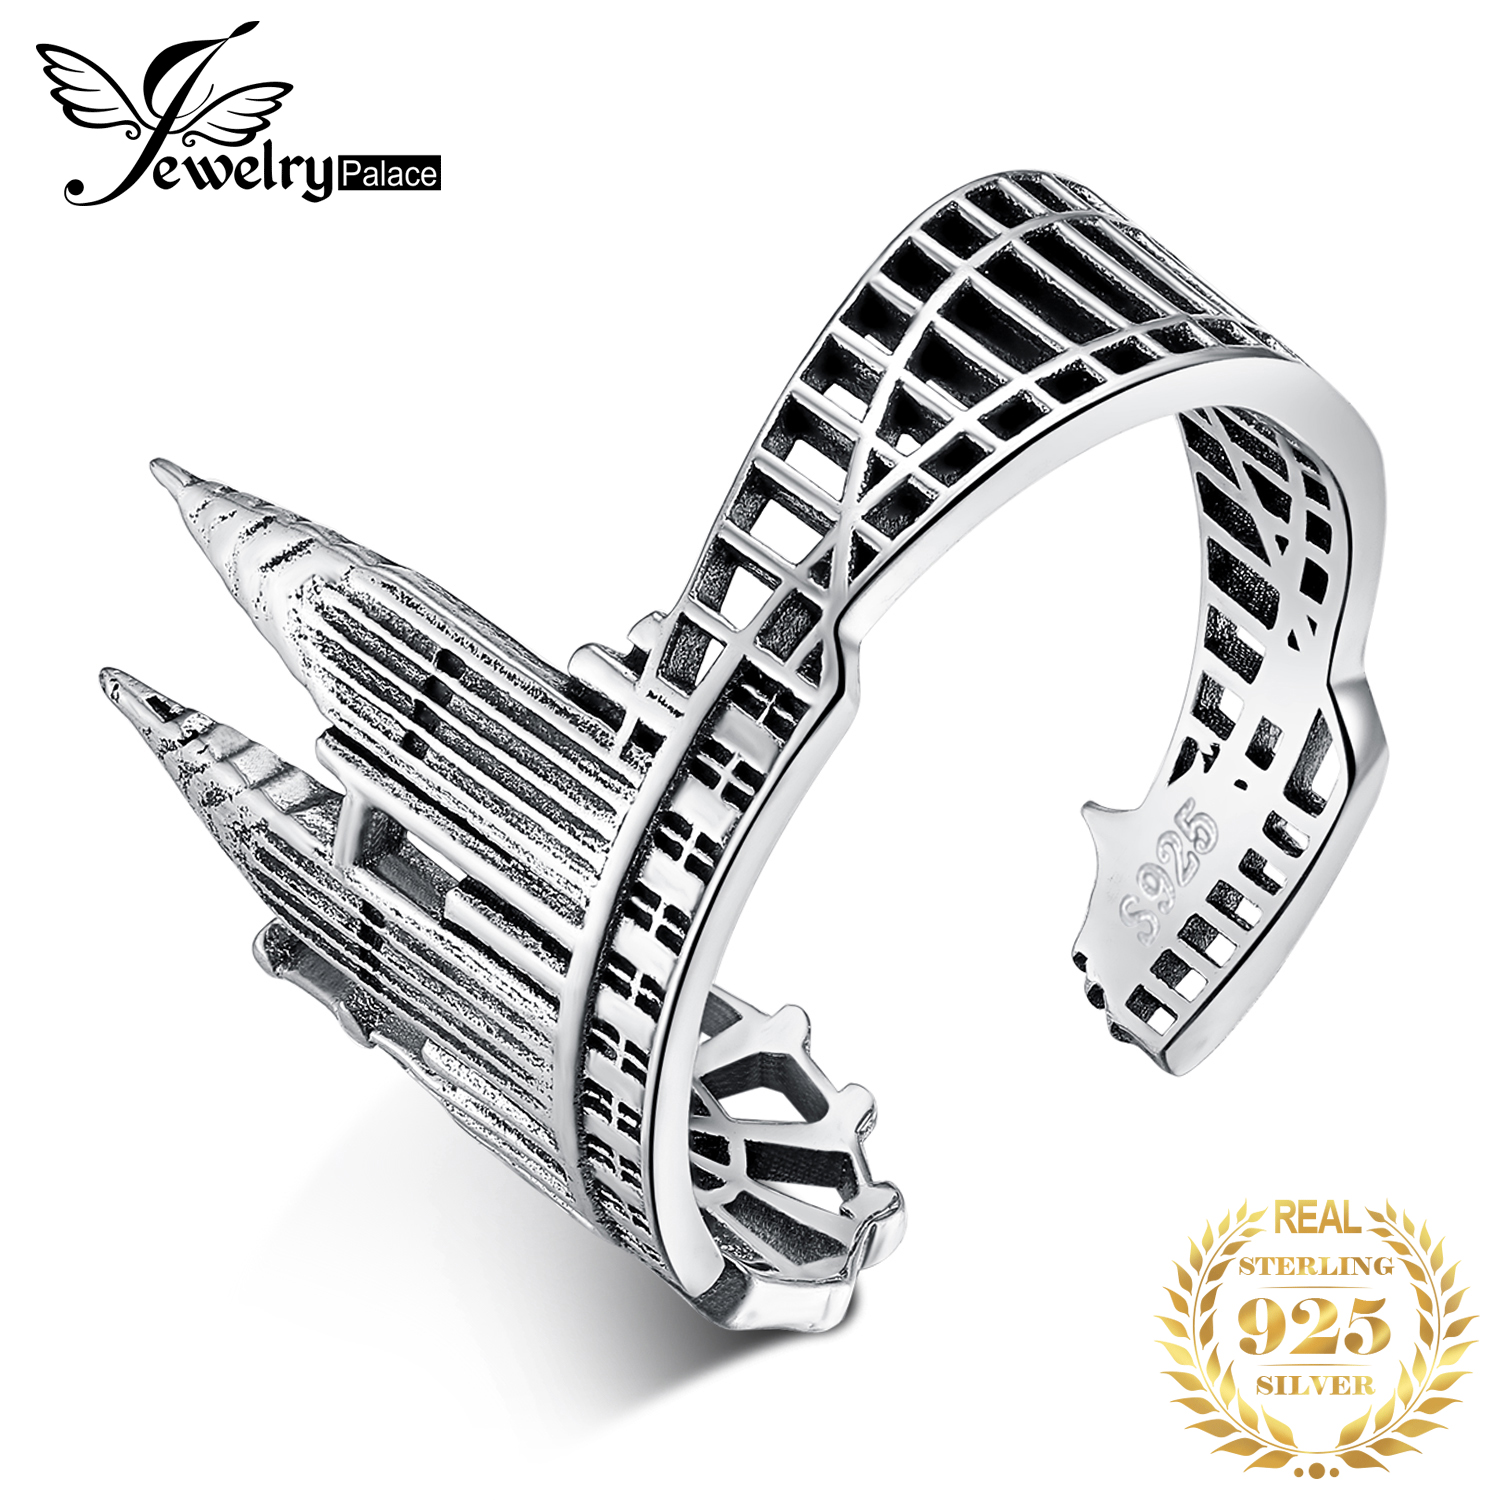 JewelryPalace Twin Towers Rings 925 Sterling Silver Rings For Women Open Stackable Ring Band Silver 925 Jewelry Fine Jewelry